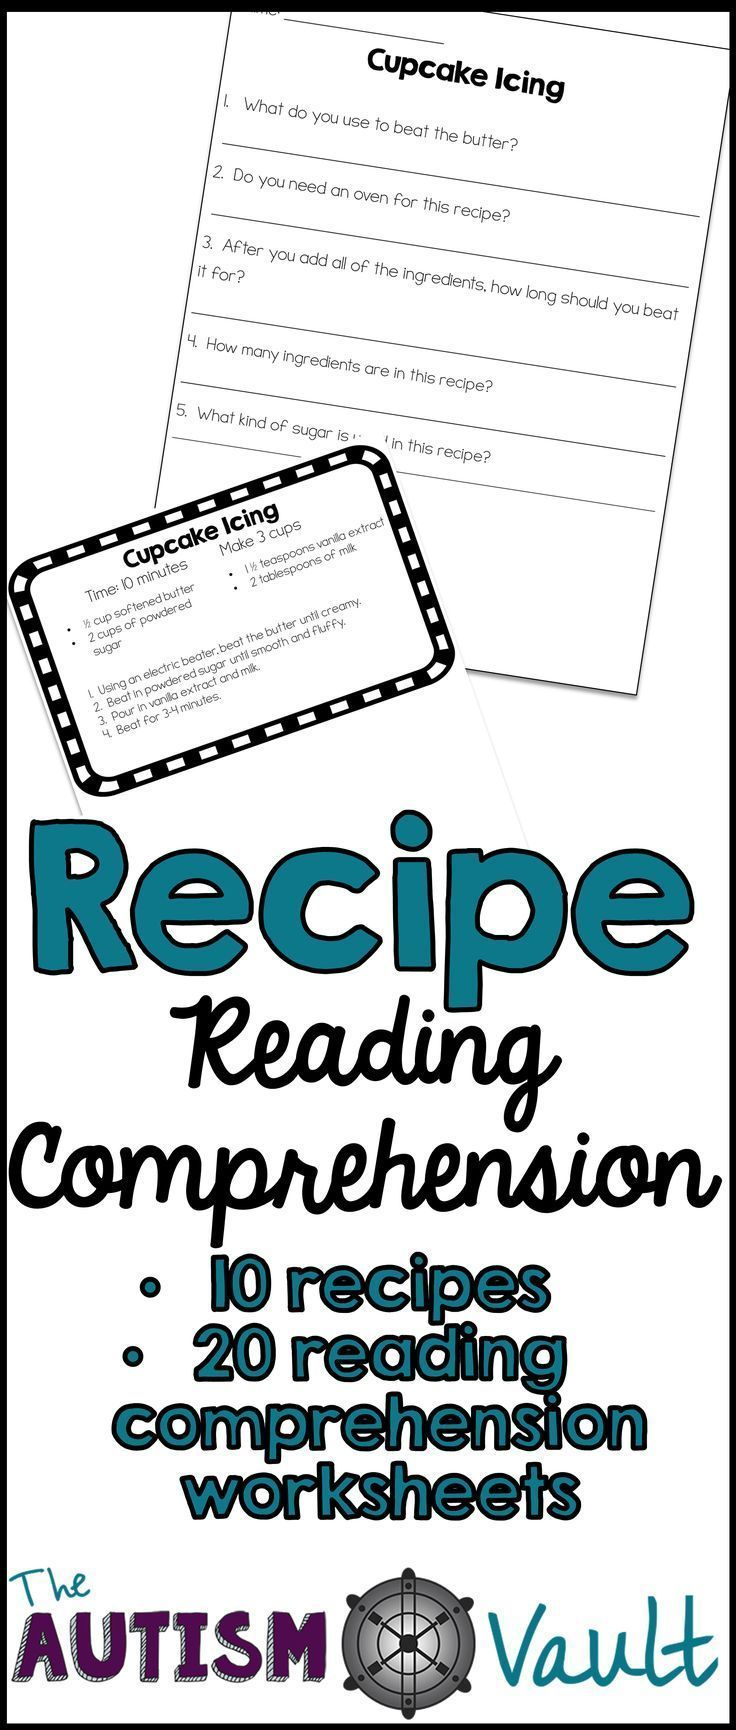 Worksheets Vocational Skills Worksheets recipe reading comprehension life skills and functional literacy worksheets c